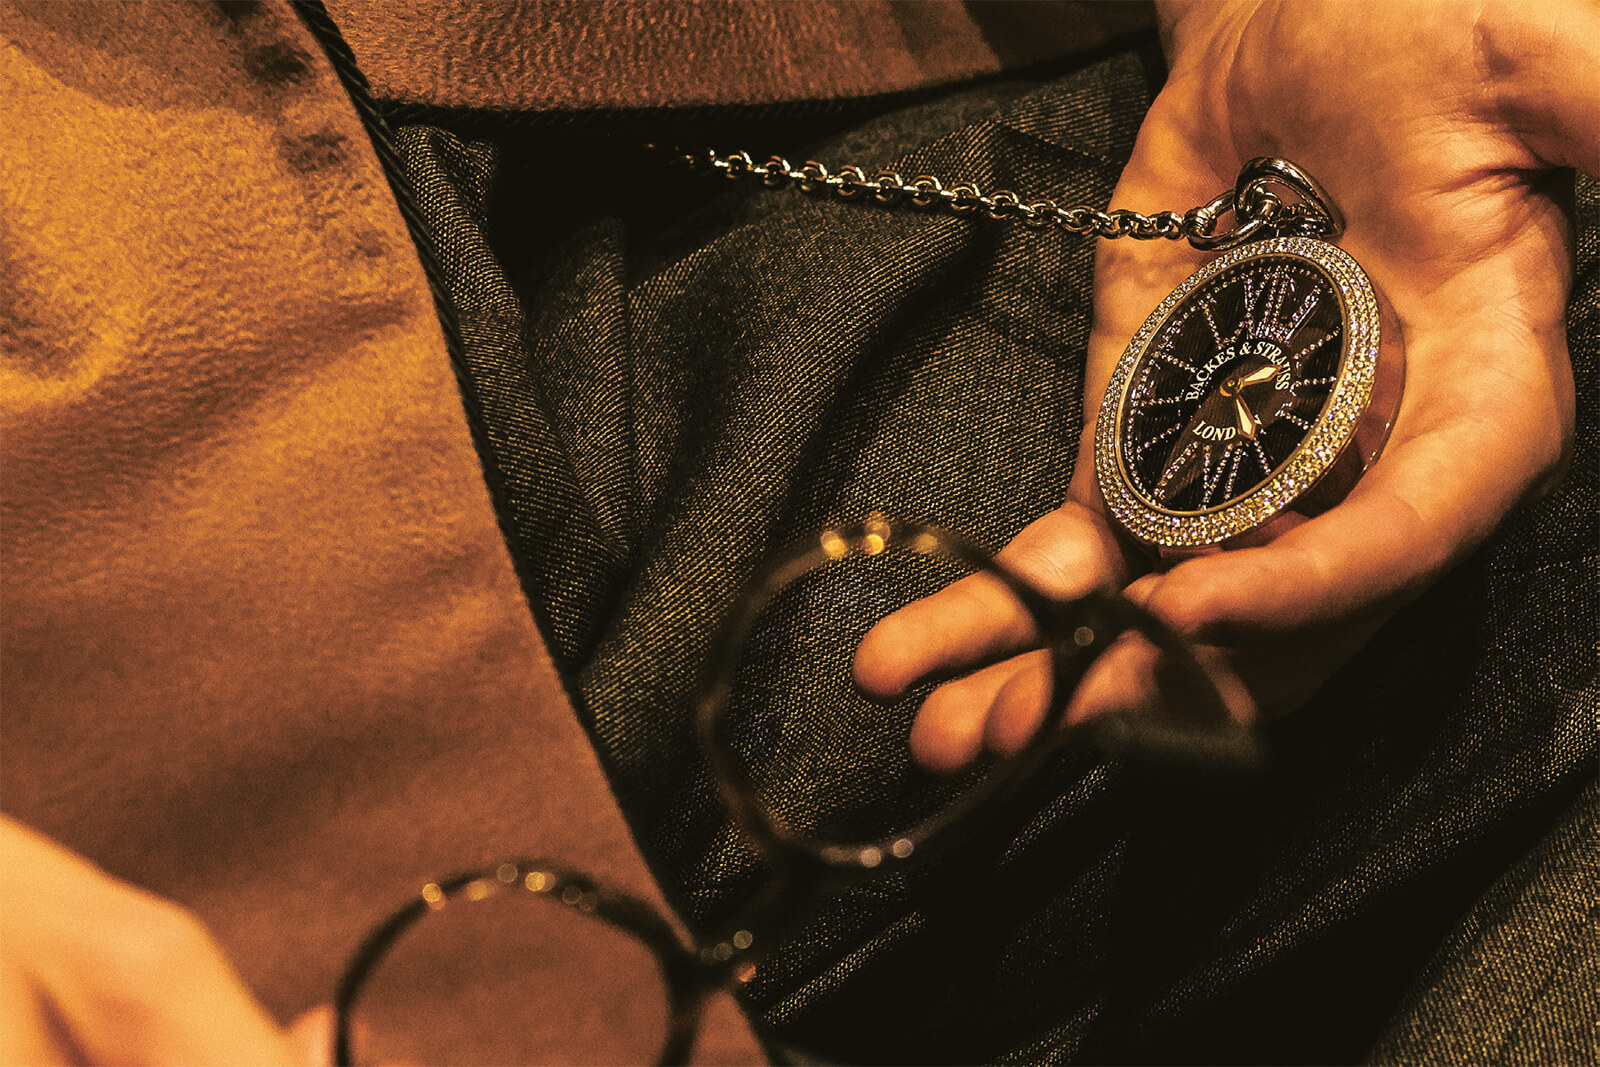 Backes & Strauss Beau Brummel Pocket Watch